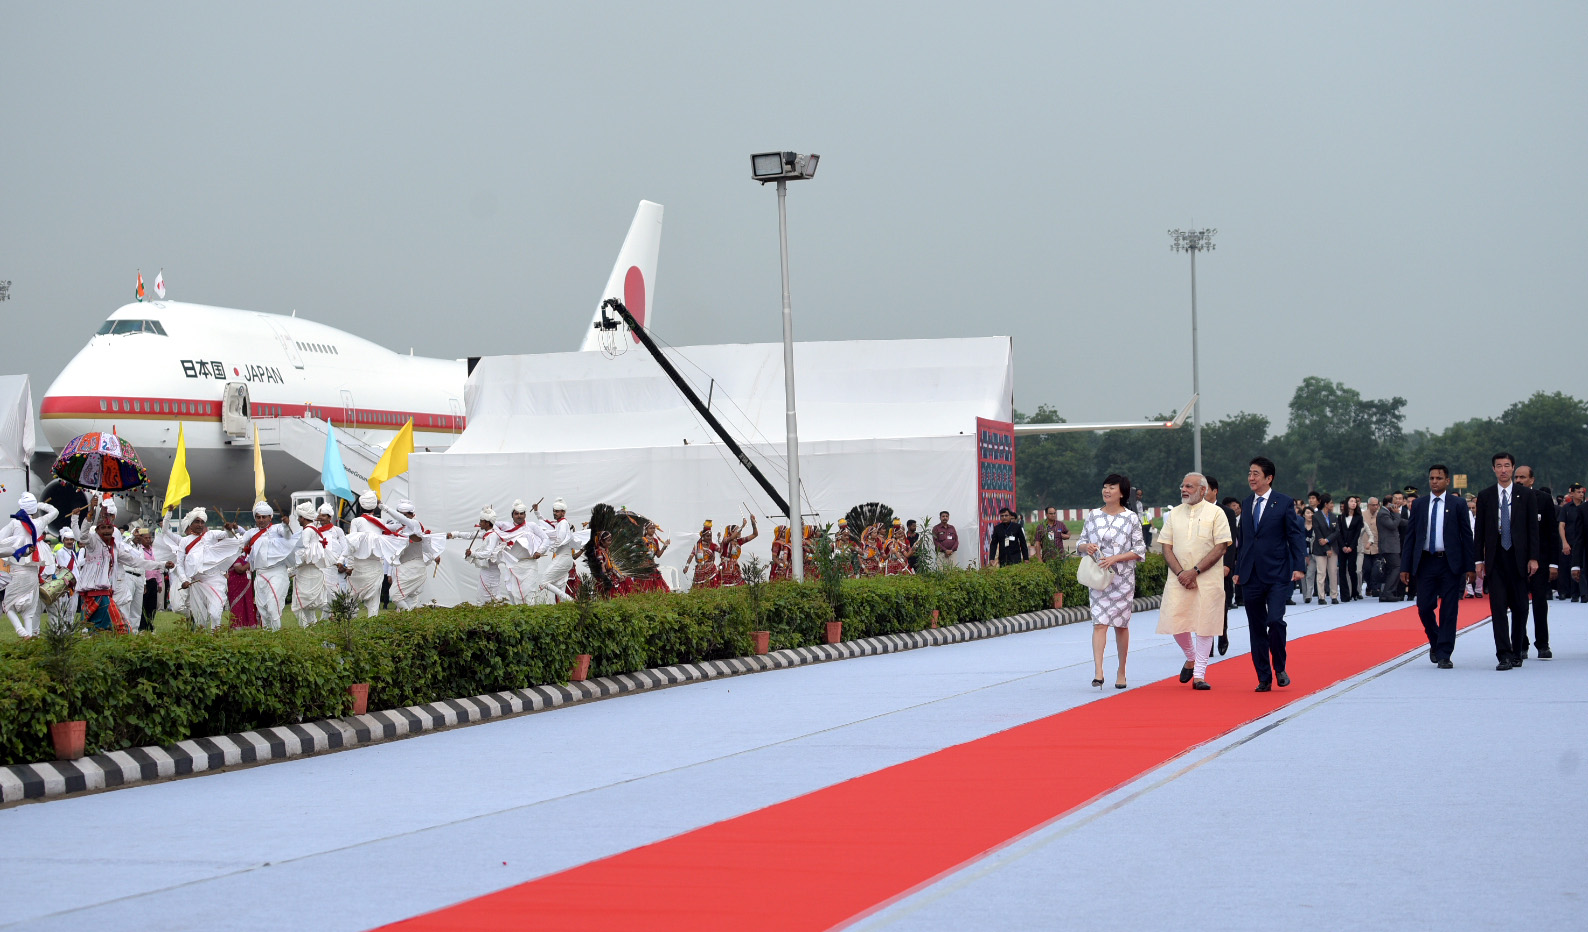 Prime Minister of Japan Shinzo Abe and  Mrs Akie Abe being accorded a red carpet welcome by the Prime Minister Narendra Modi, at Ahmedabad airport, Gujarat on September 13, 2017